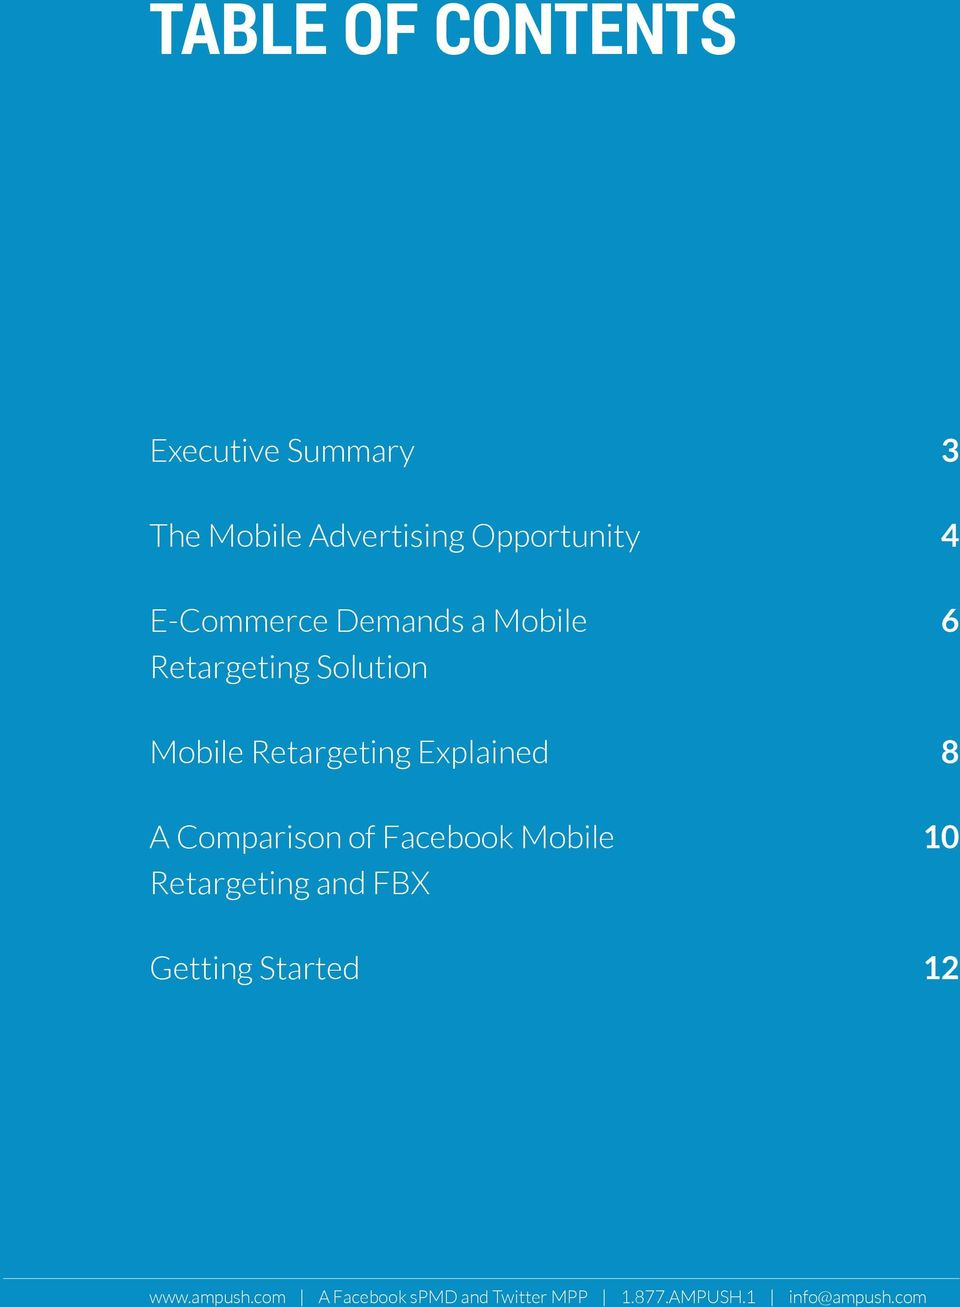 Explained 8 A Comparison of Facebook Mobile Retargeting and FBX 10 Getting